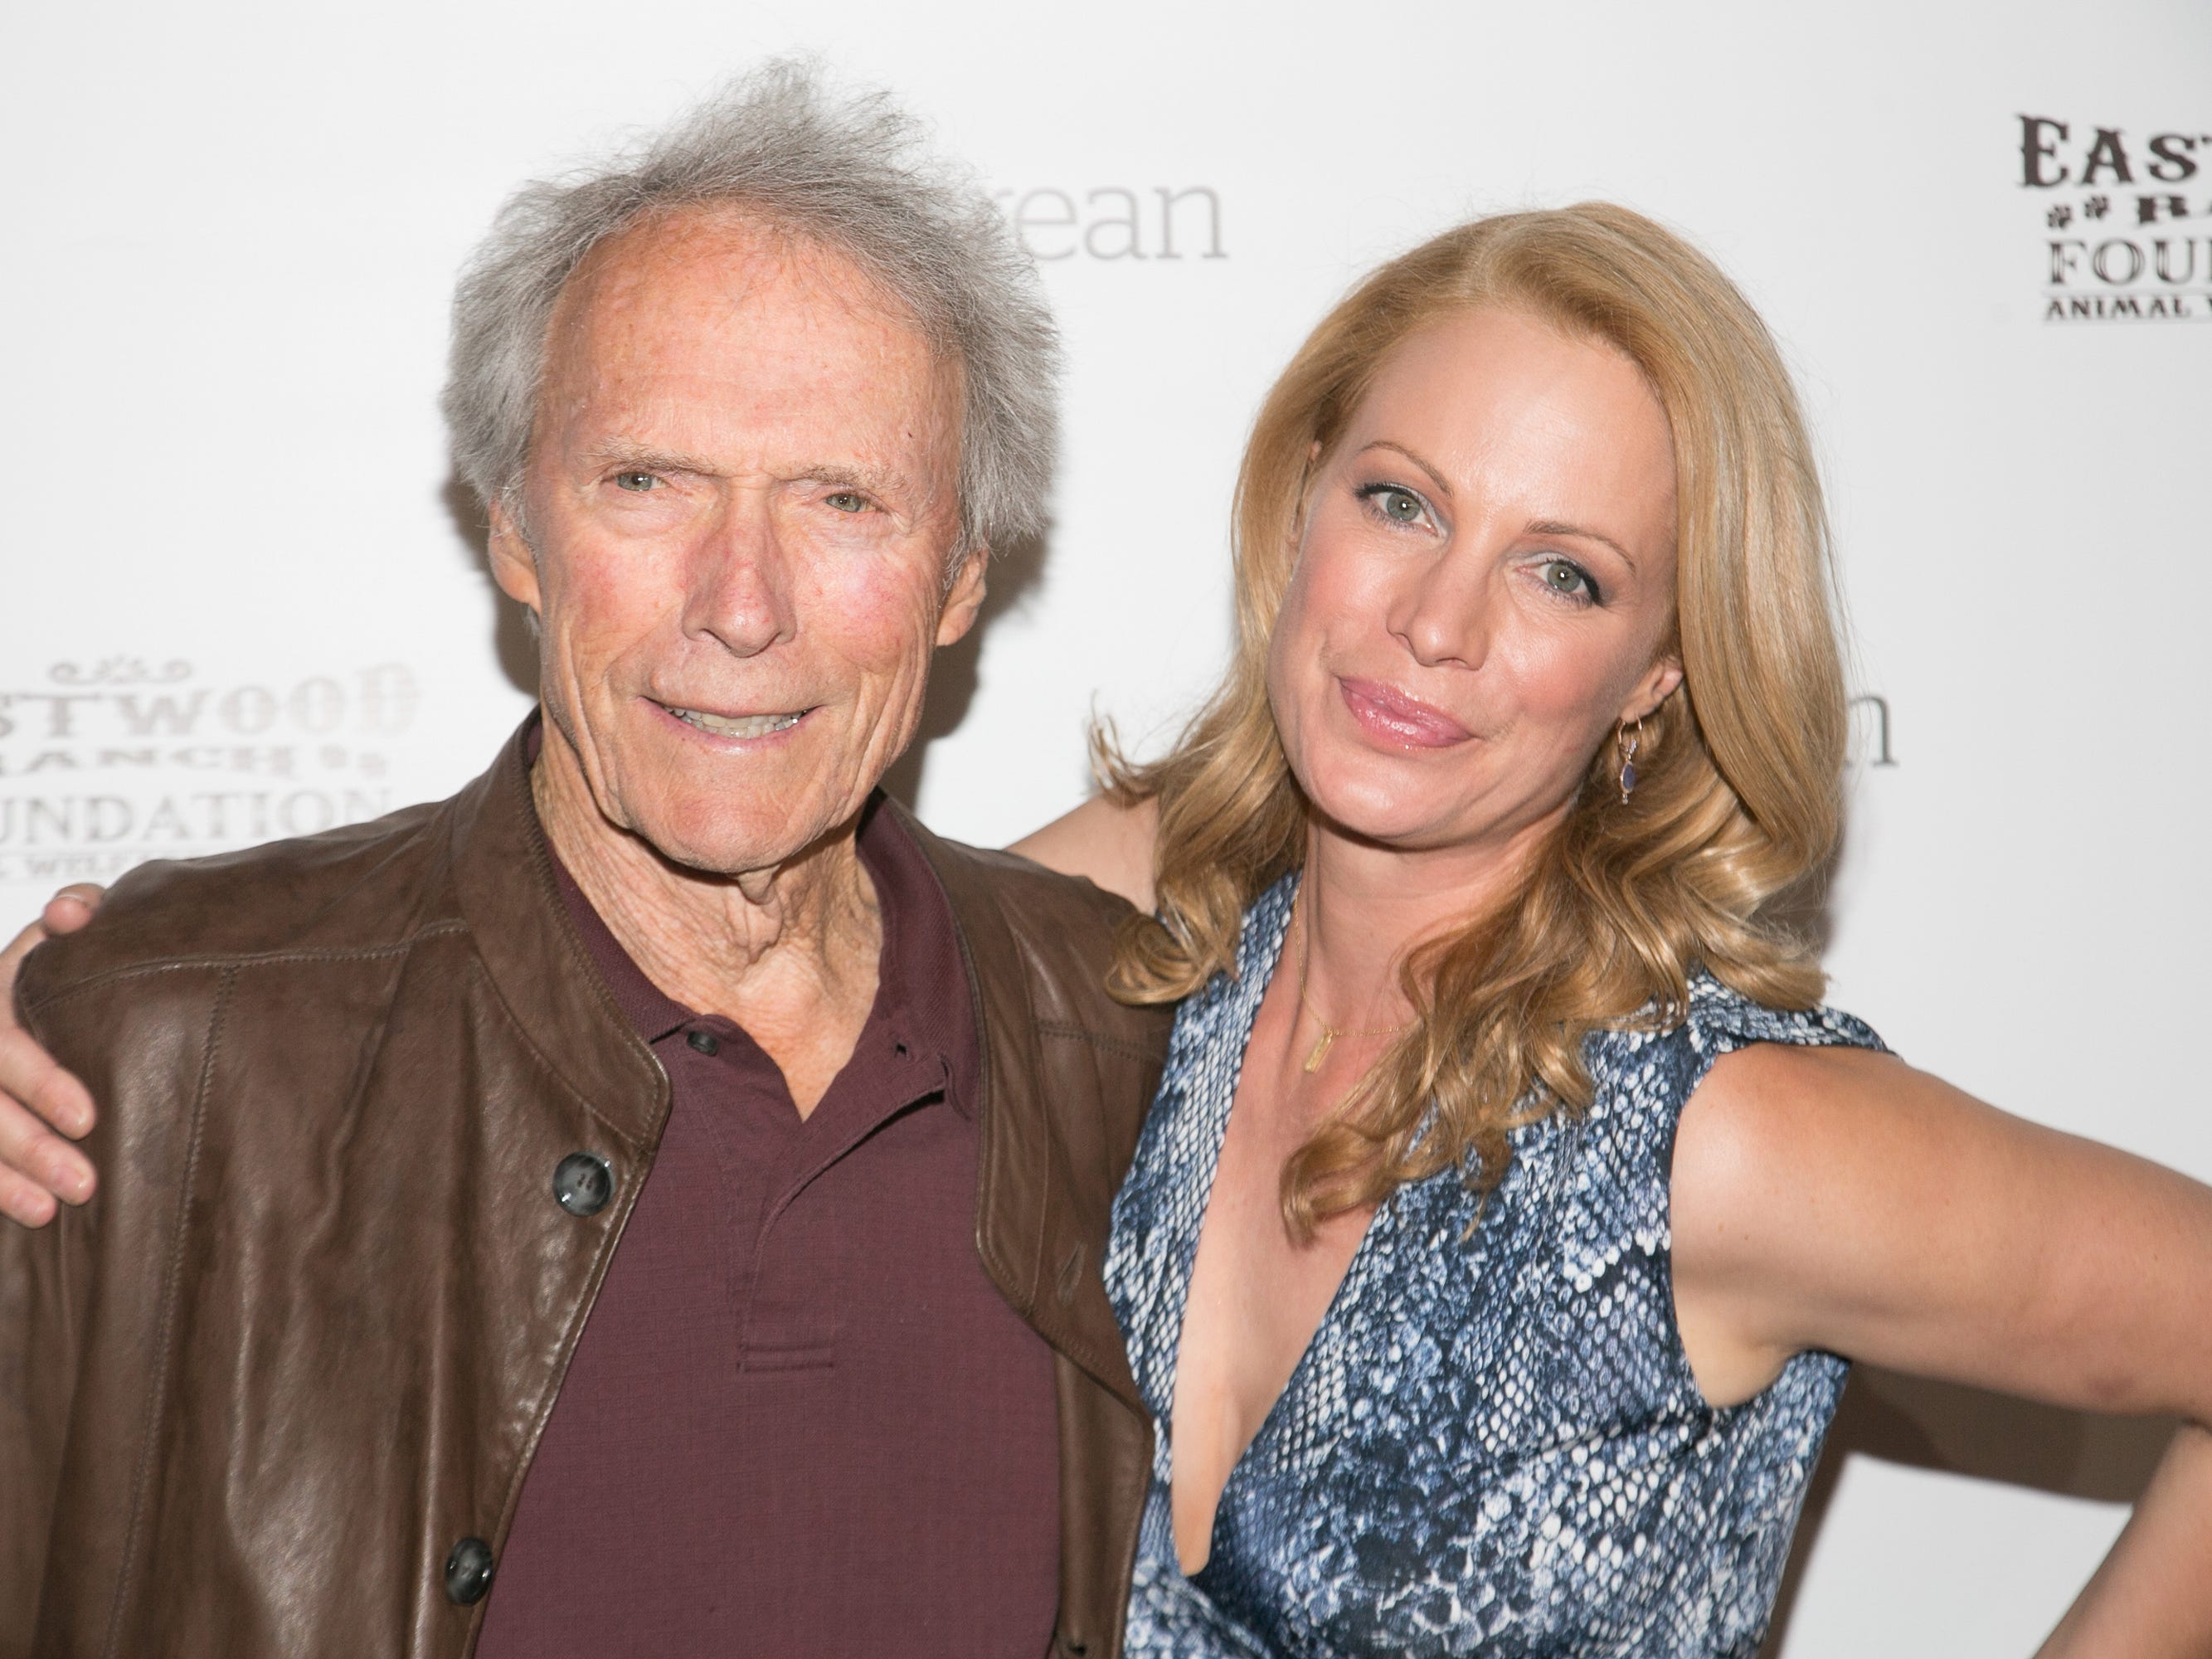 """Real-life father and daughter Clint and Alison Eastwood play those same roles onscreen in """"The Mule"""" for the first time since the 1984 thriller """"Tightrope."""""""